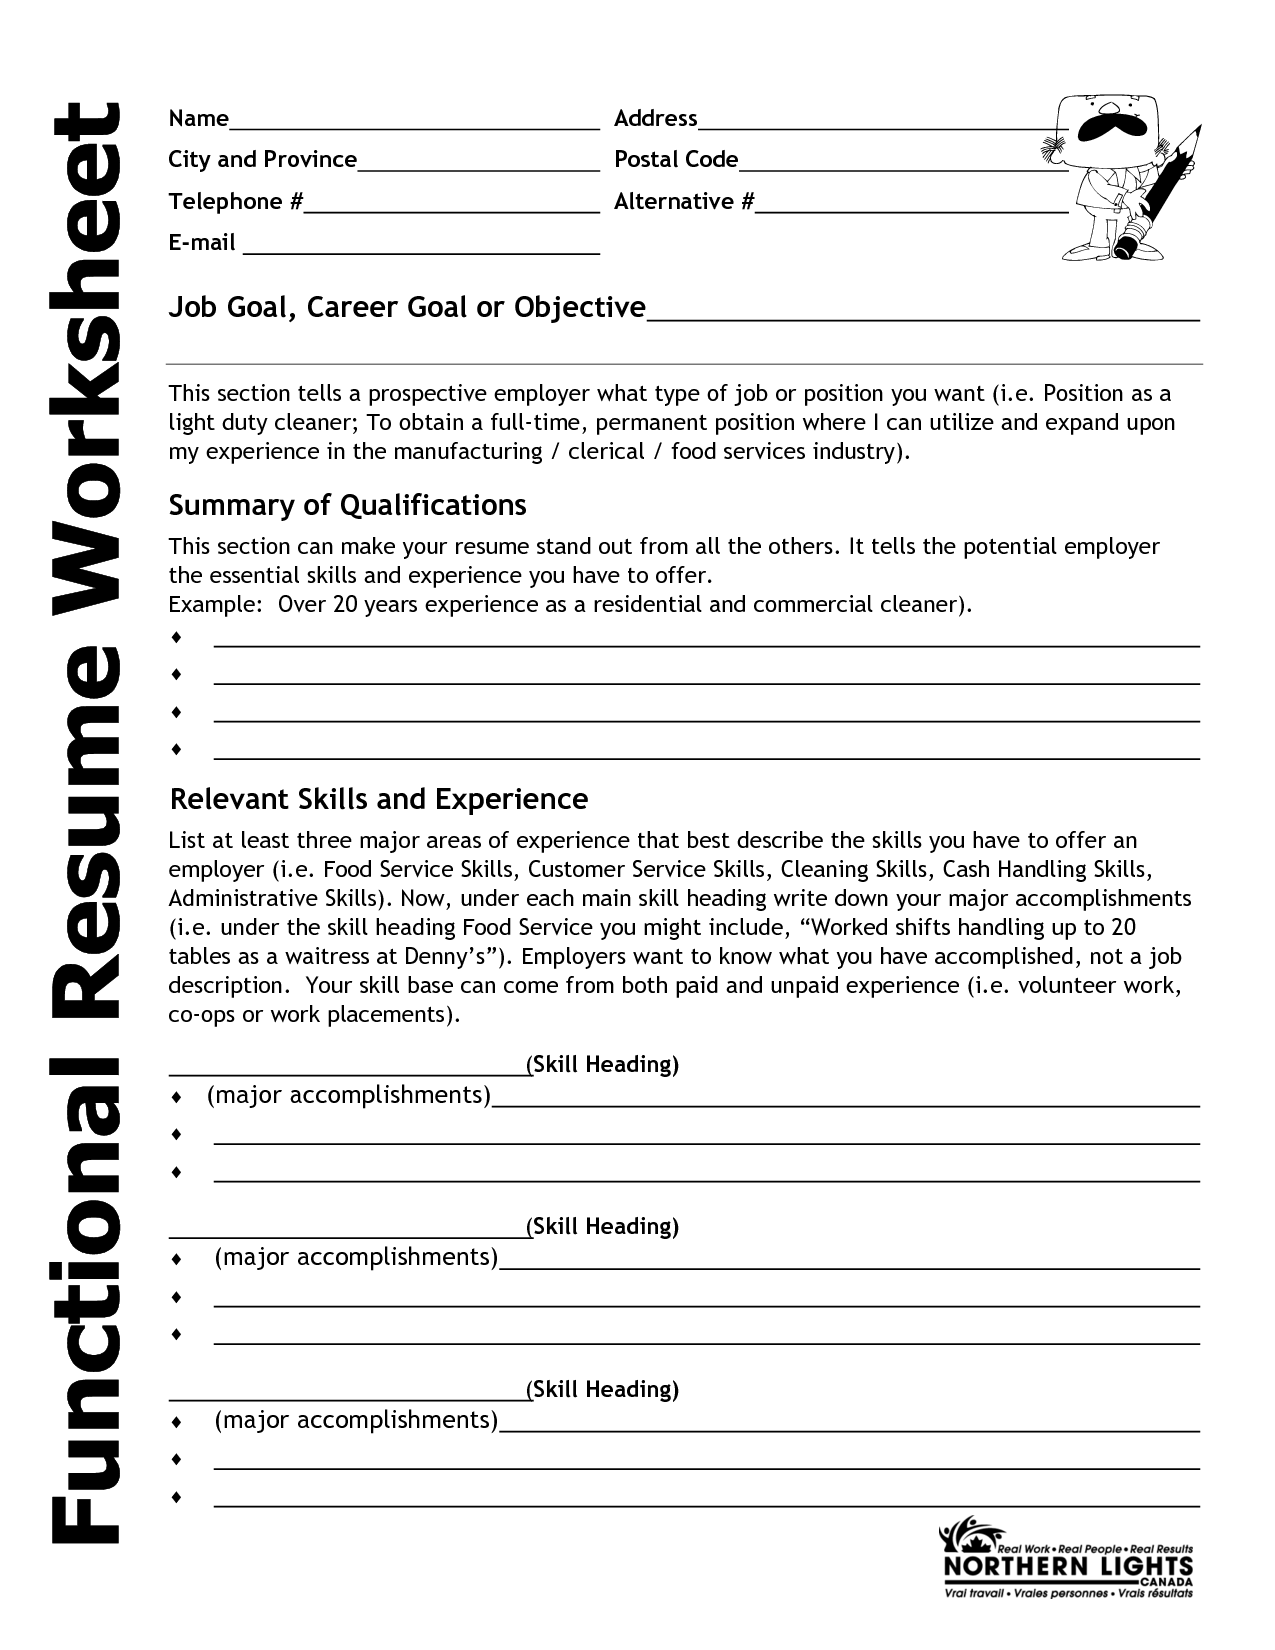 Printables Resume Worksheet Template resume worksheet template worksheet